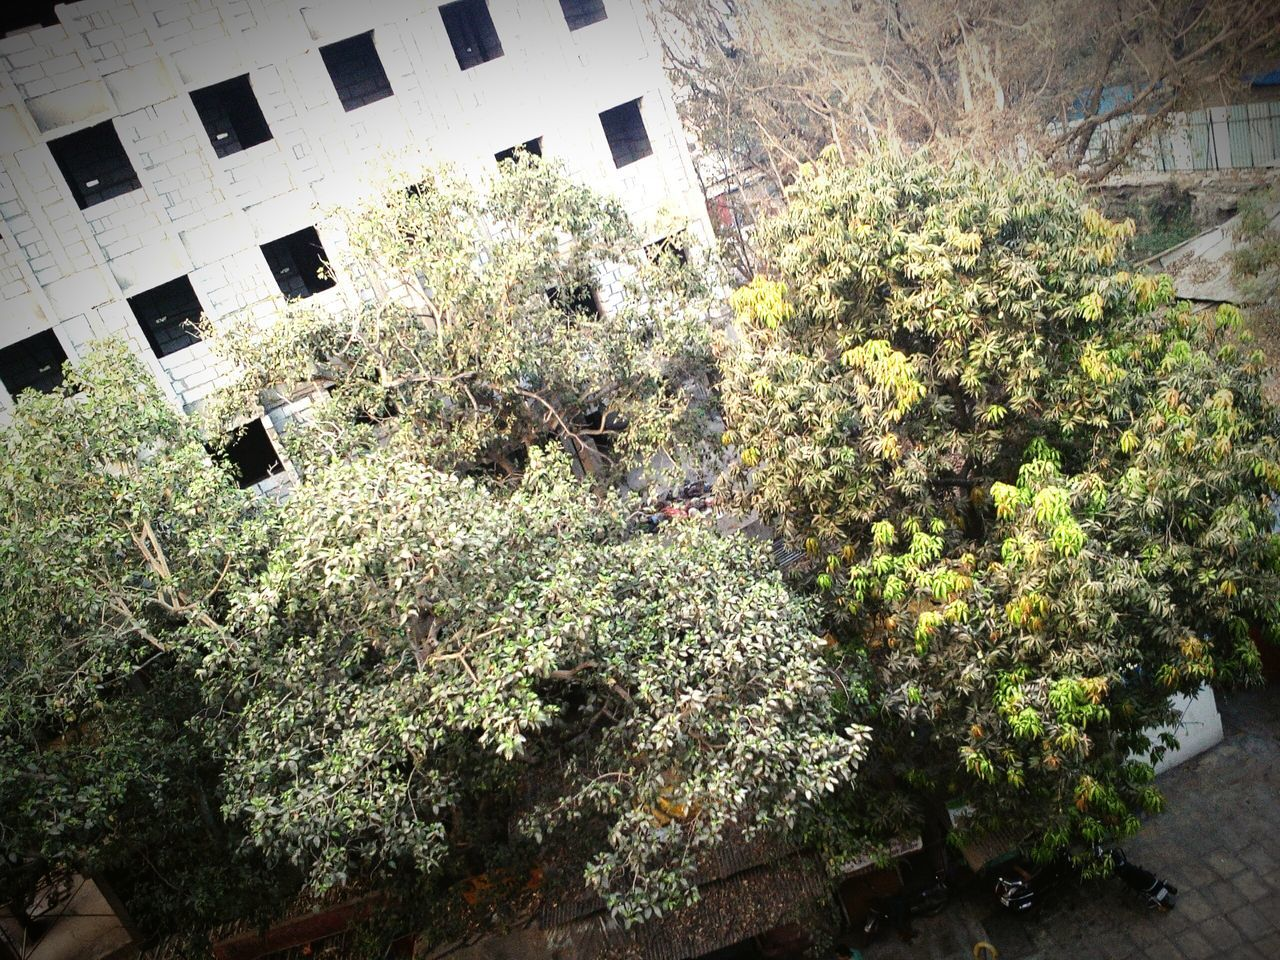 architecture, building exterior, built structure, tree, growth, plant, no people, day, outdoors, nature, city